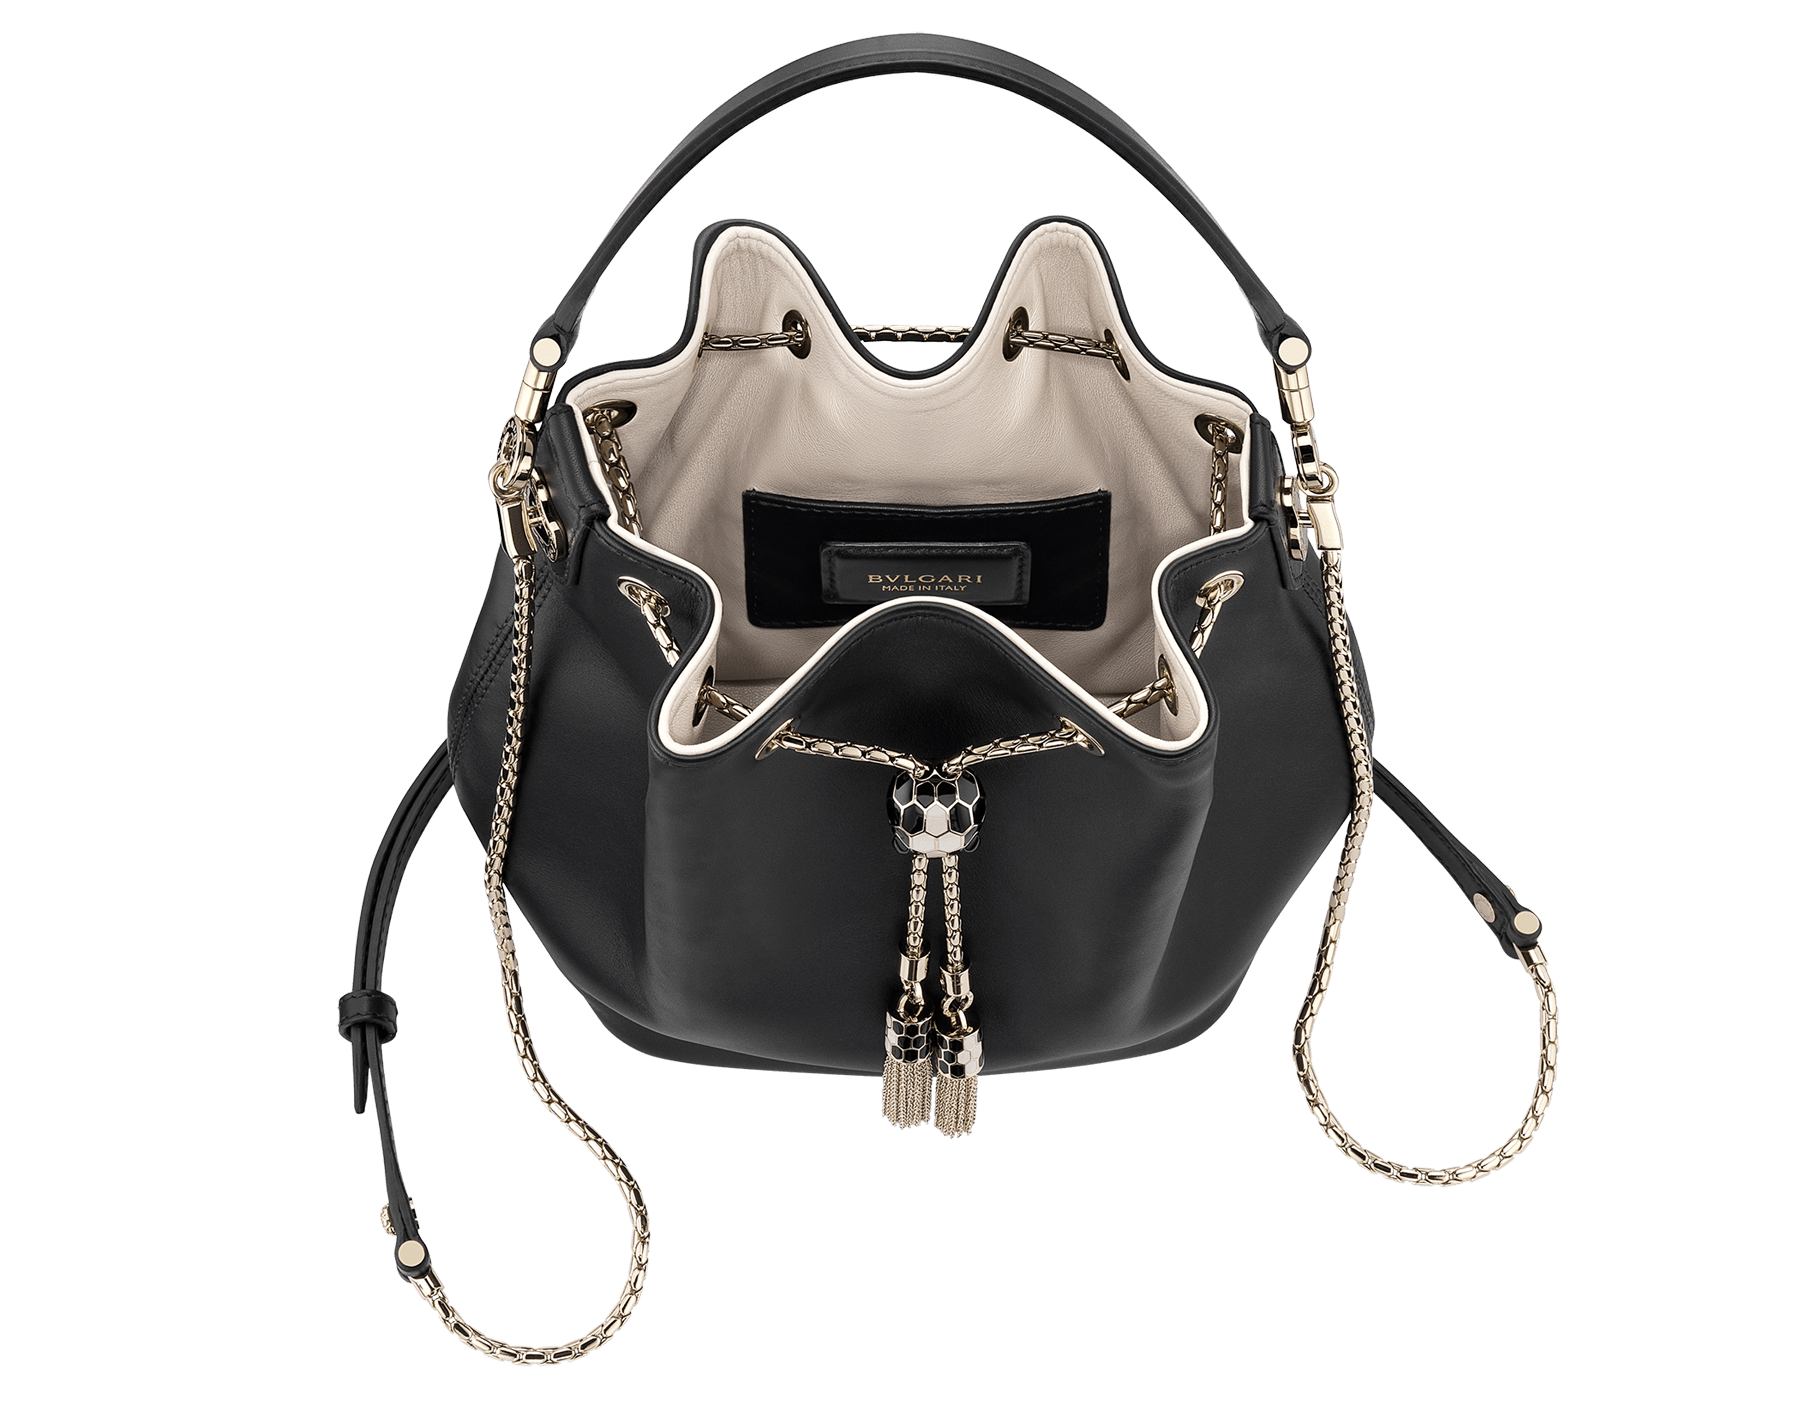 Bucket Serpenti Forever in black smooth calf leather and milky opal nappa internal lining. Hardware in light gold plated brass and snakehead closure in black and white enamel, with eyes in black onyx. 934-CLb image 4